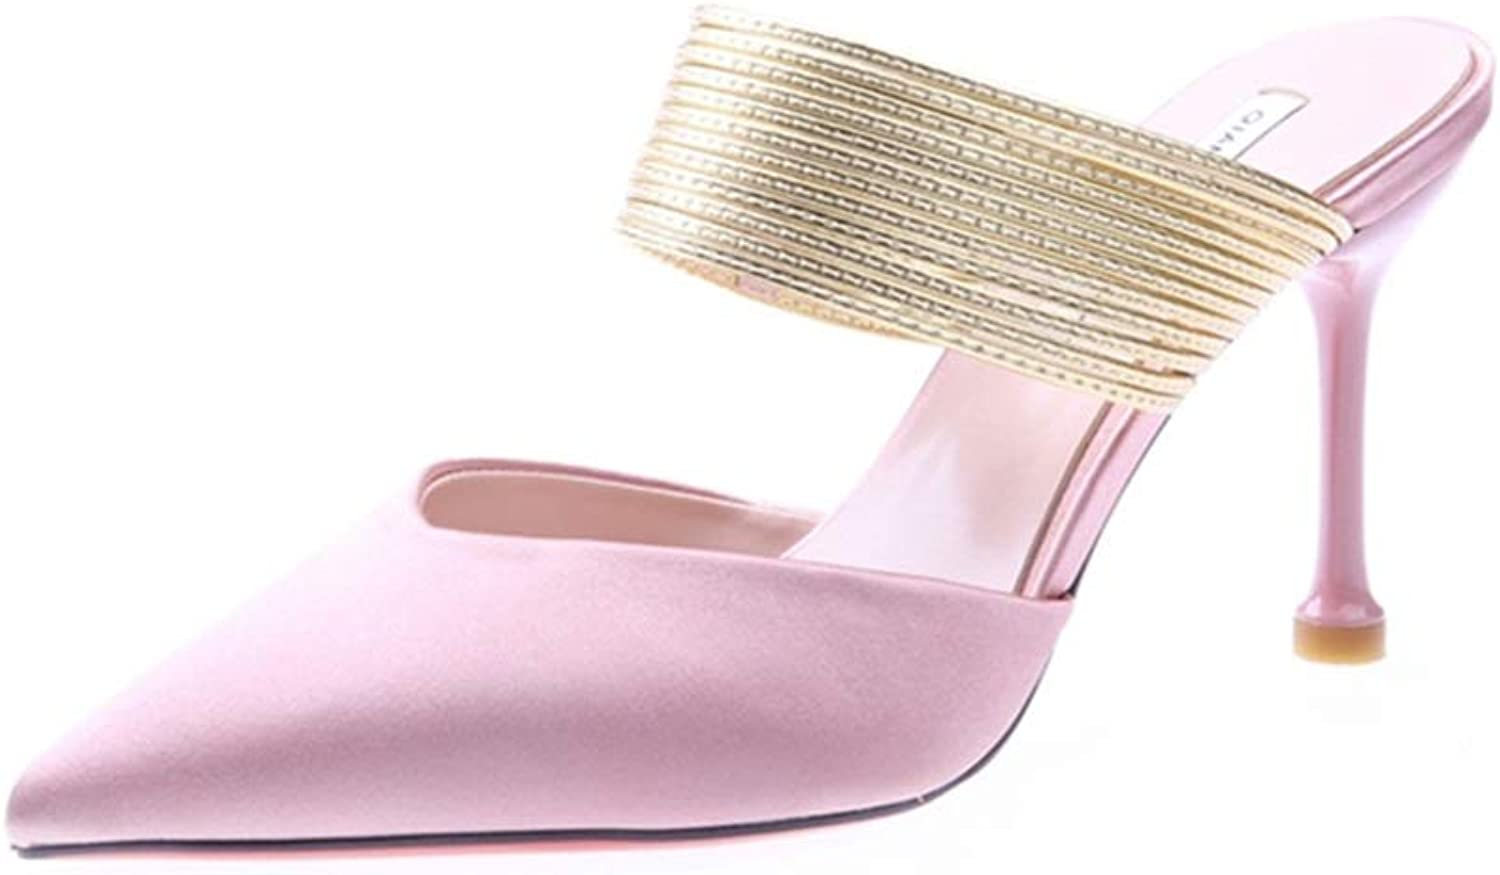 WANGFANG Sandals Sandals and Slippers, Summer Baotou Stiletto Slippers Shallow High Heel Slippers for Women (color   Pink, Size   US7 EU38 UK5 MX4.5 CN38)